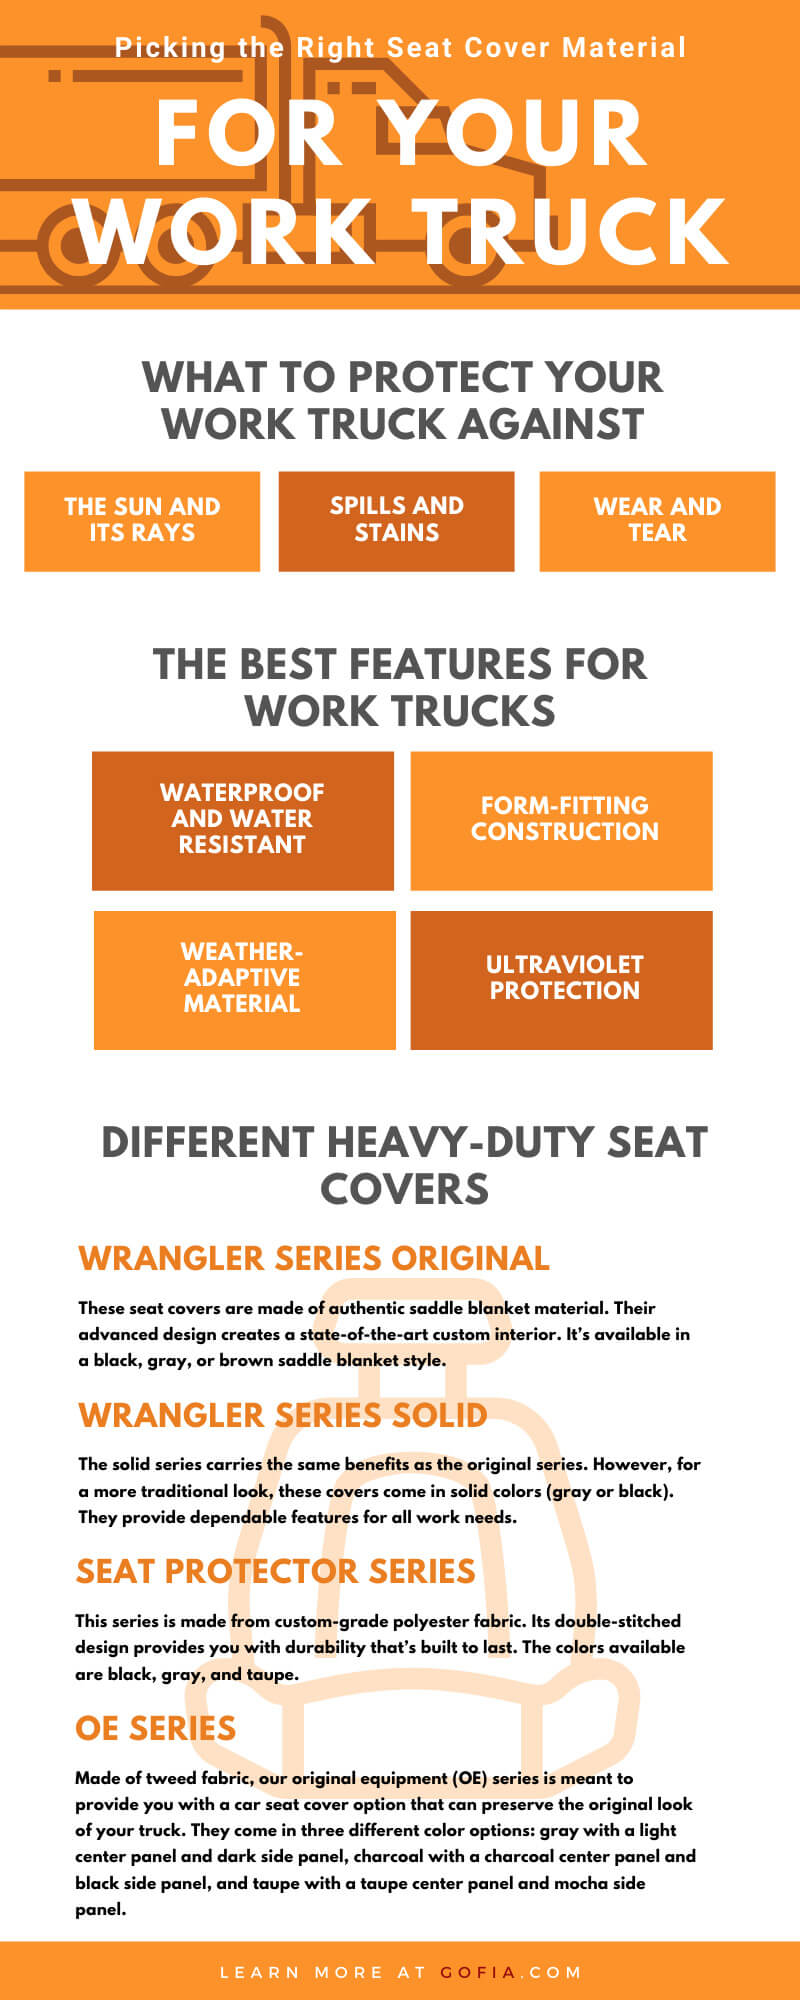 Picking the Right Seat Cover Material for Your Work Truck